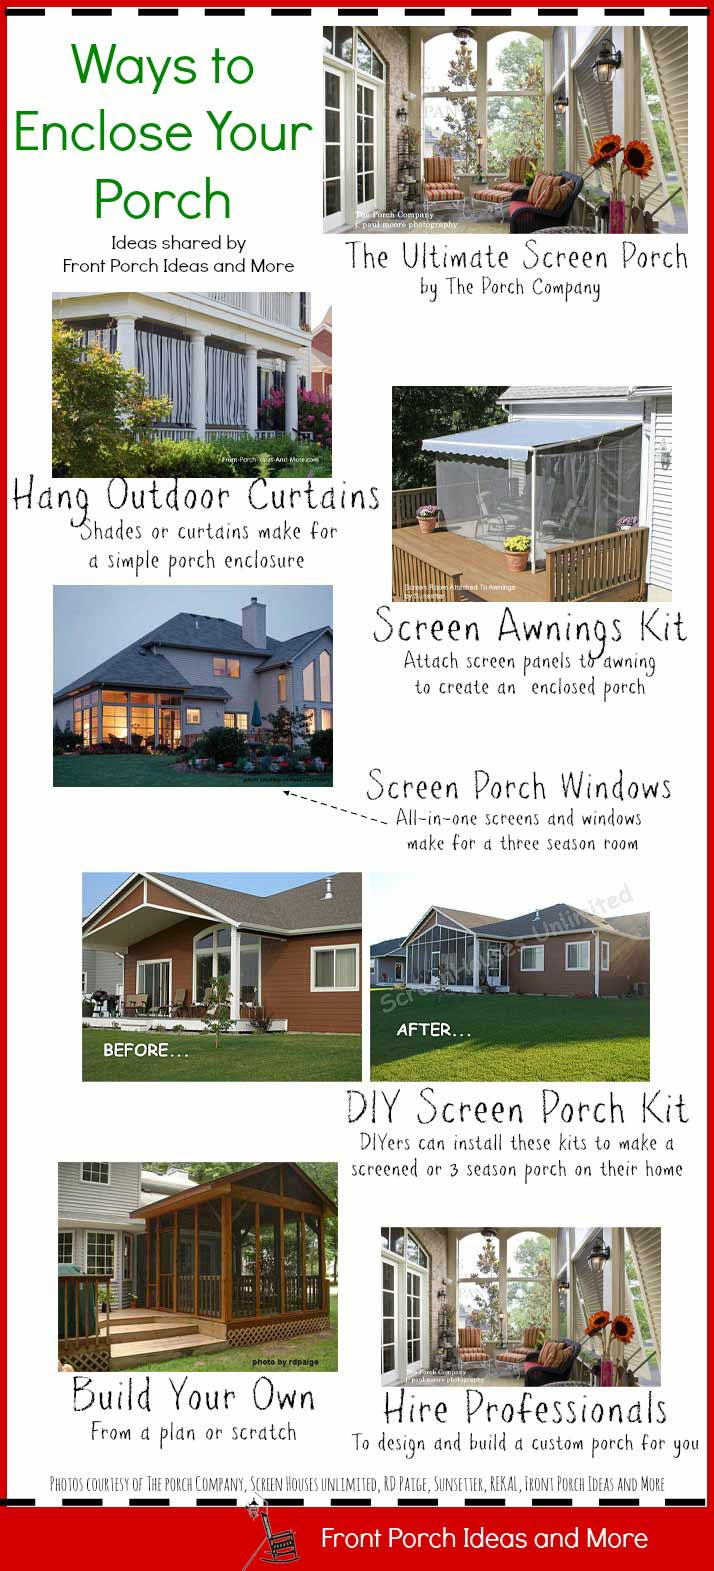 Porch enclosures ten great ideas to consider if you want an enclosed porch here are some ways to achieve that from solutioingenieria Gallery